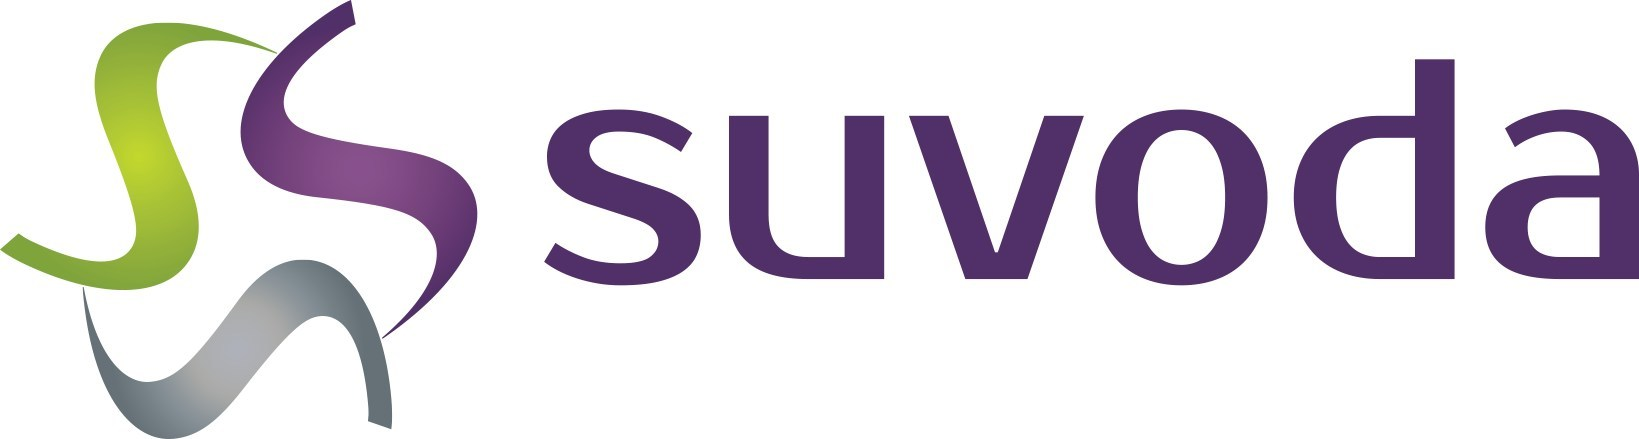 Suvoda Receives $40M Investment from LLR Partners | FinSMEs